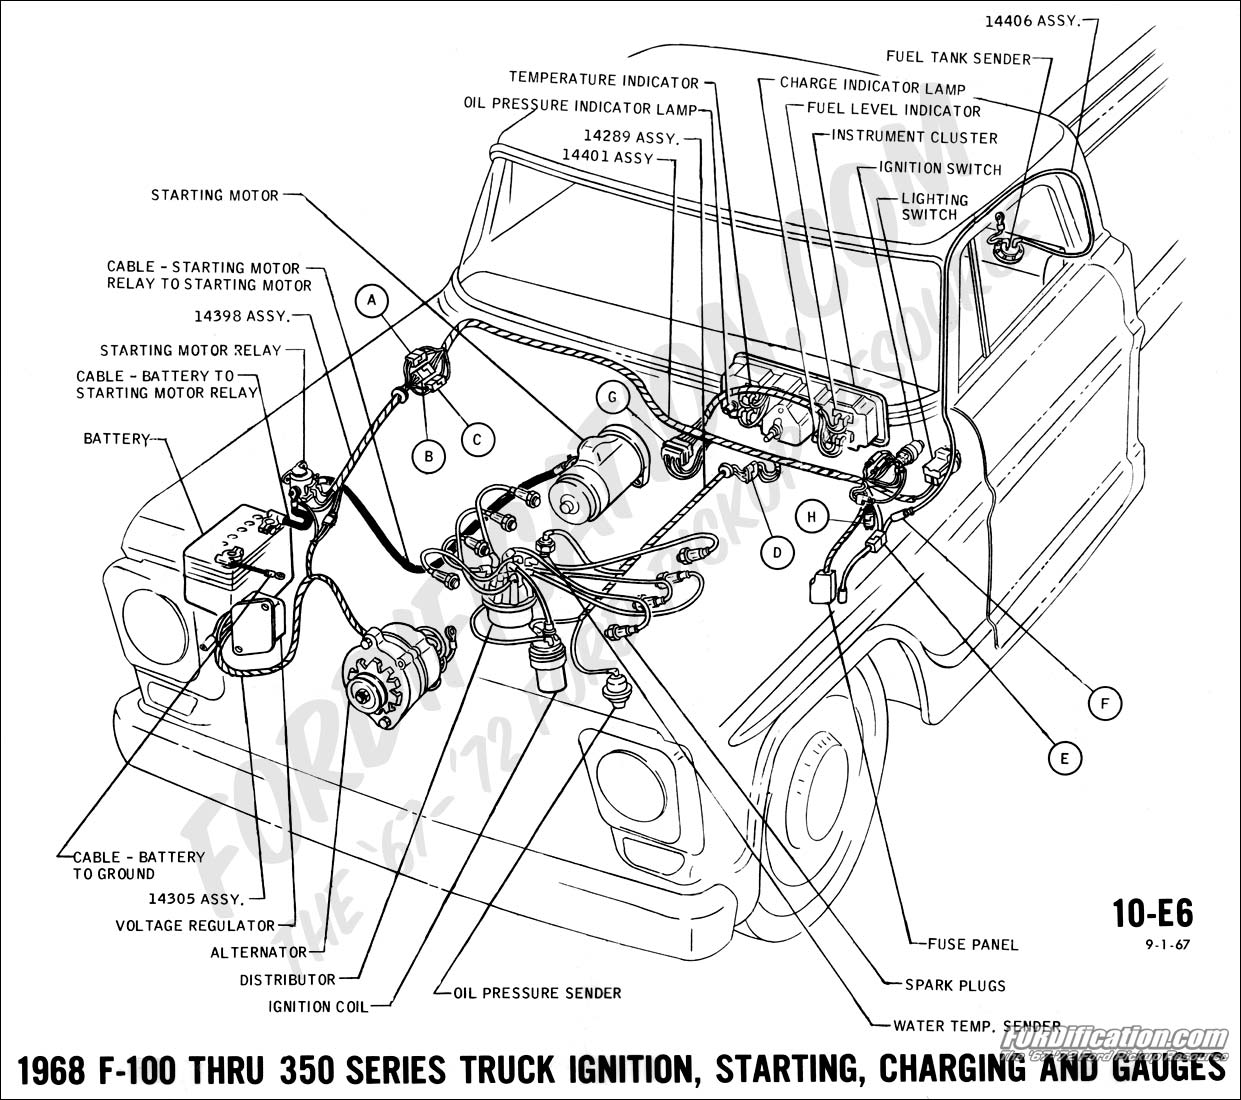 1968 Chevy Camaro Ignition Switch Wiring Diagram | Wiring Diagram on 68 mustang fuse panel diagram, 68 mustang horn wiring diagram, 68 mustang alternator wiring diagram, 68 mustang brake pedal diagram,